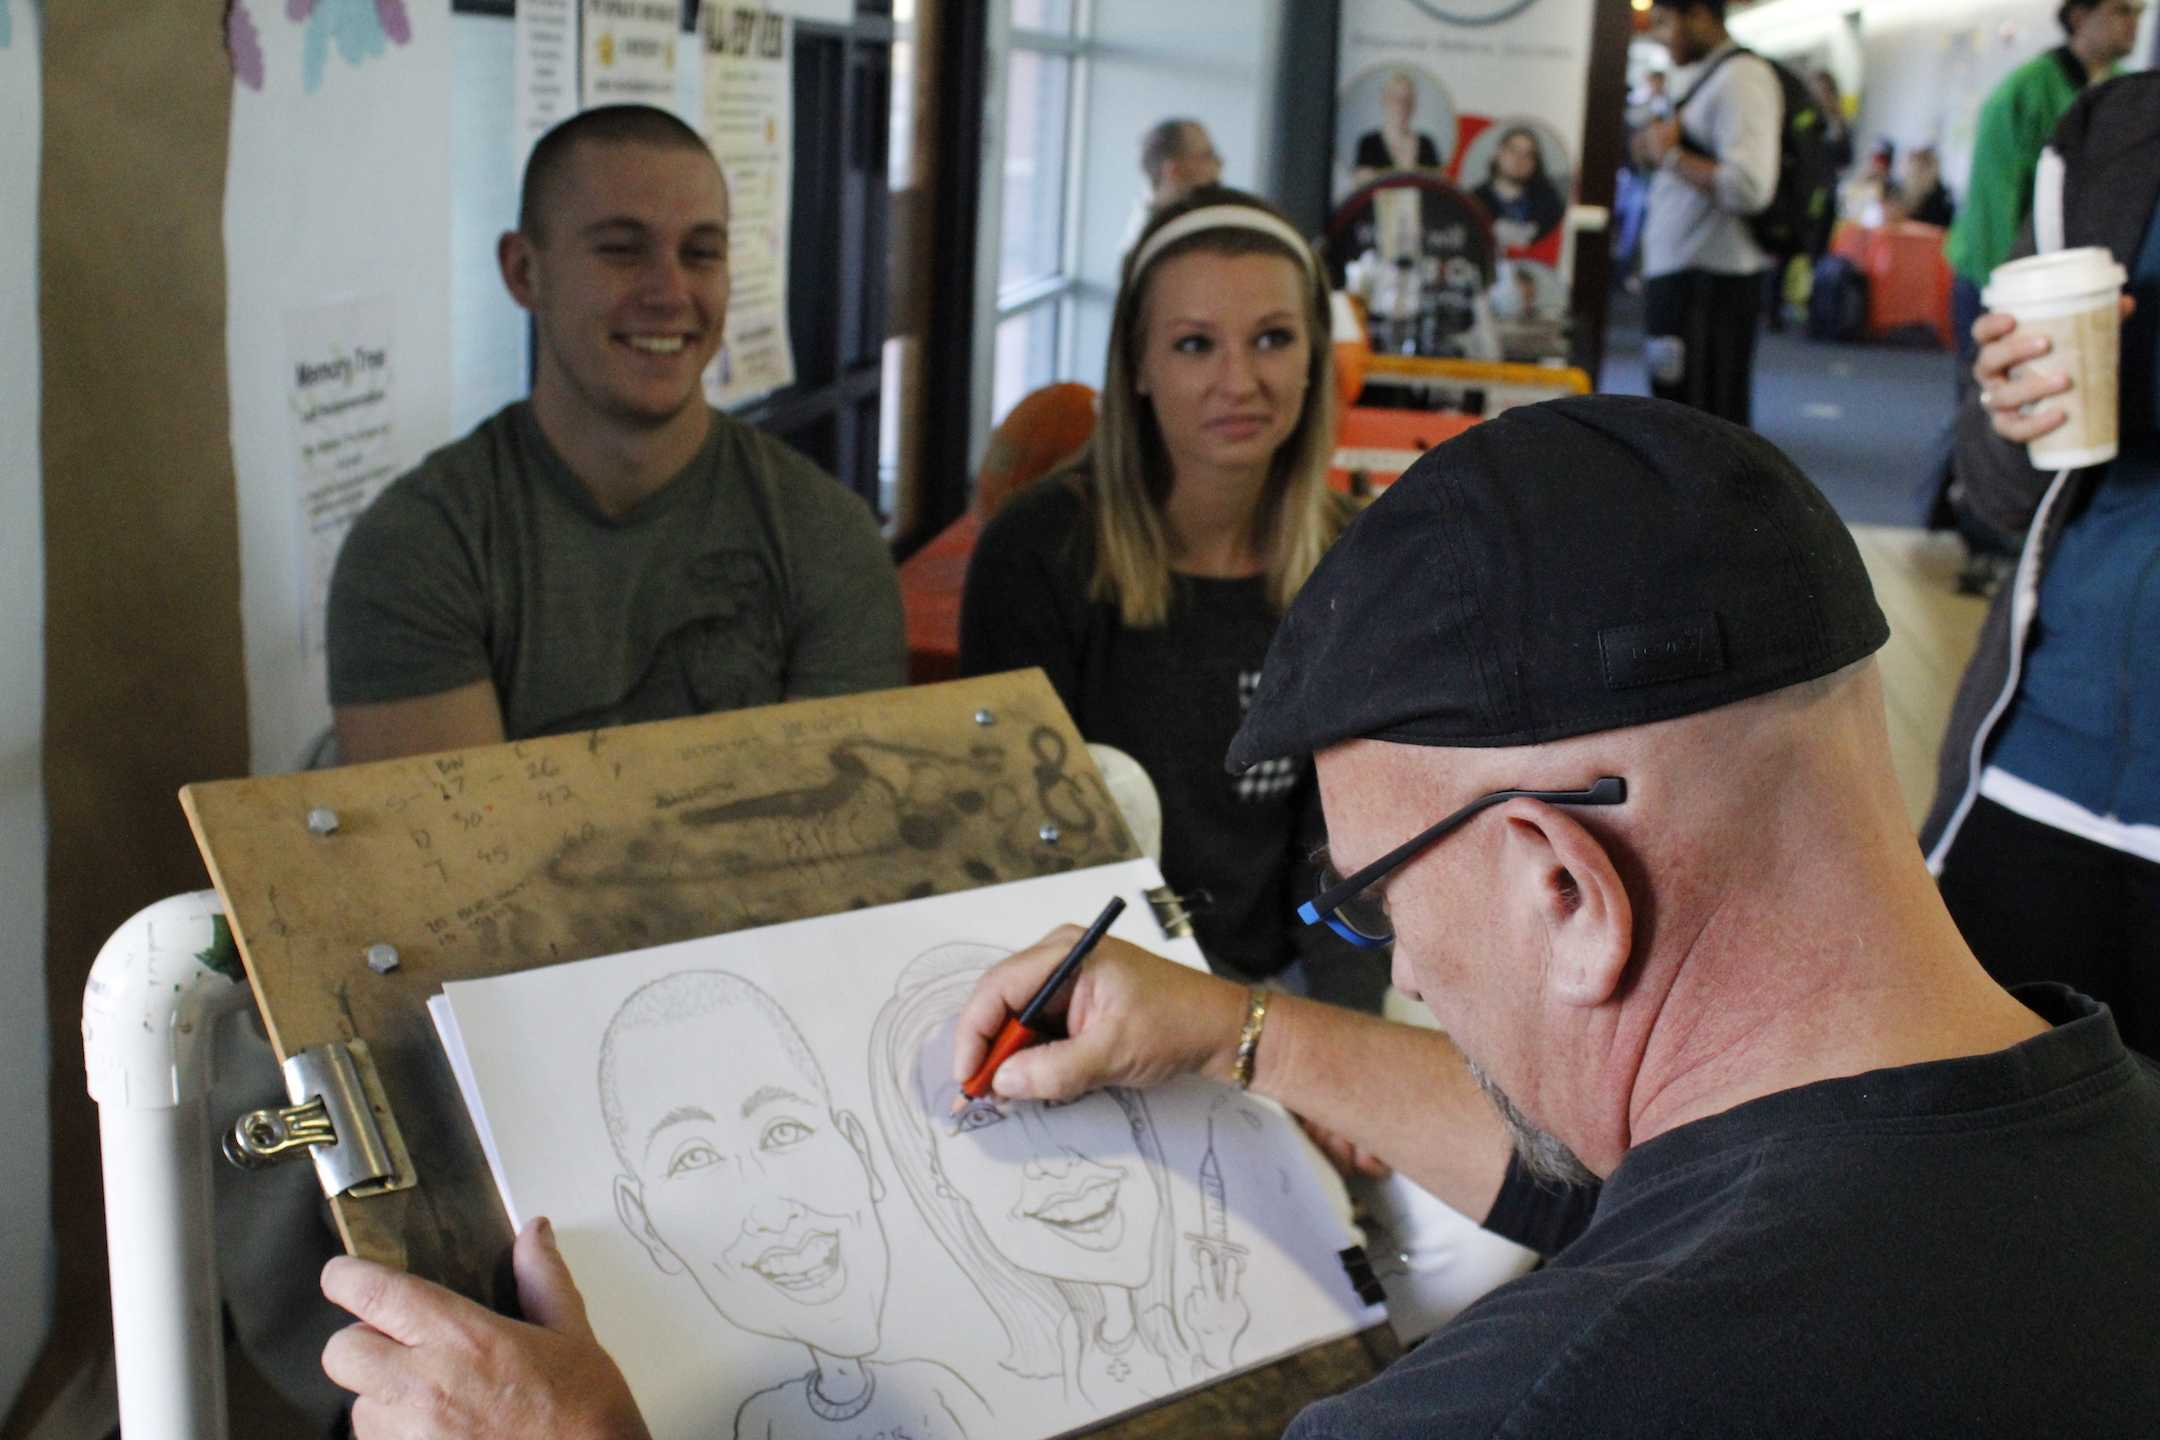 Caricatures, Free Pizza and Live Music Made Fall Fest a Success